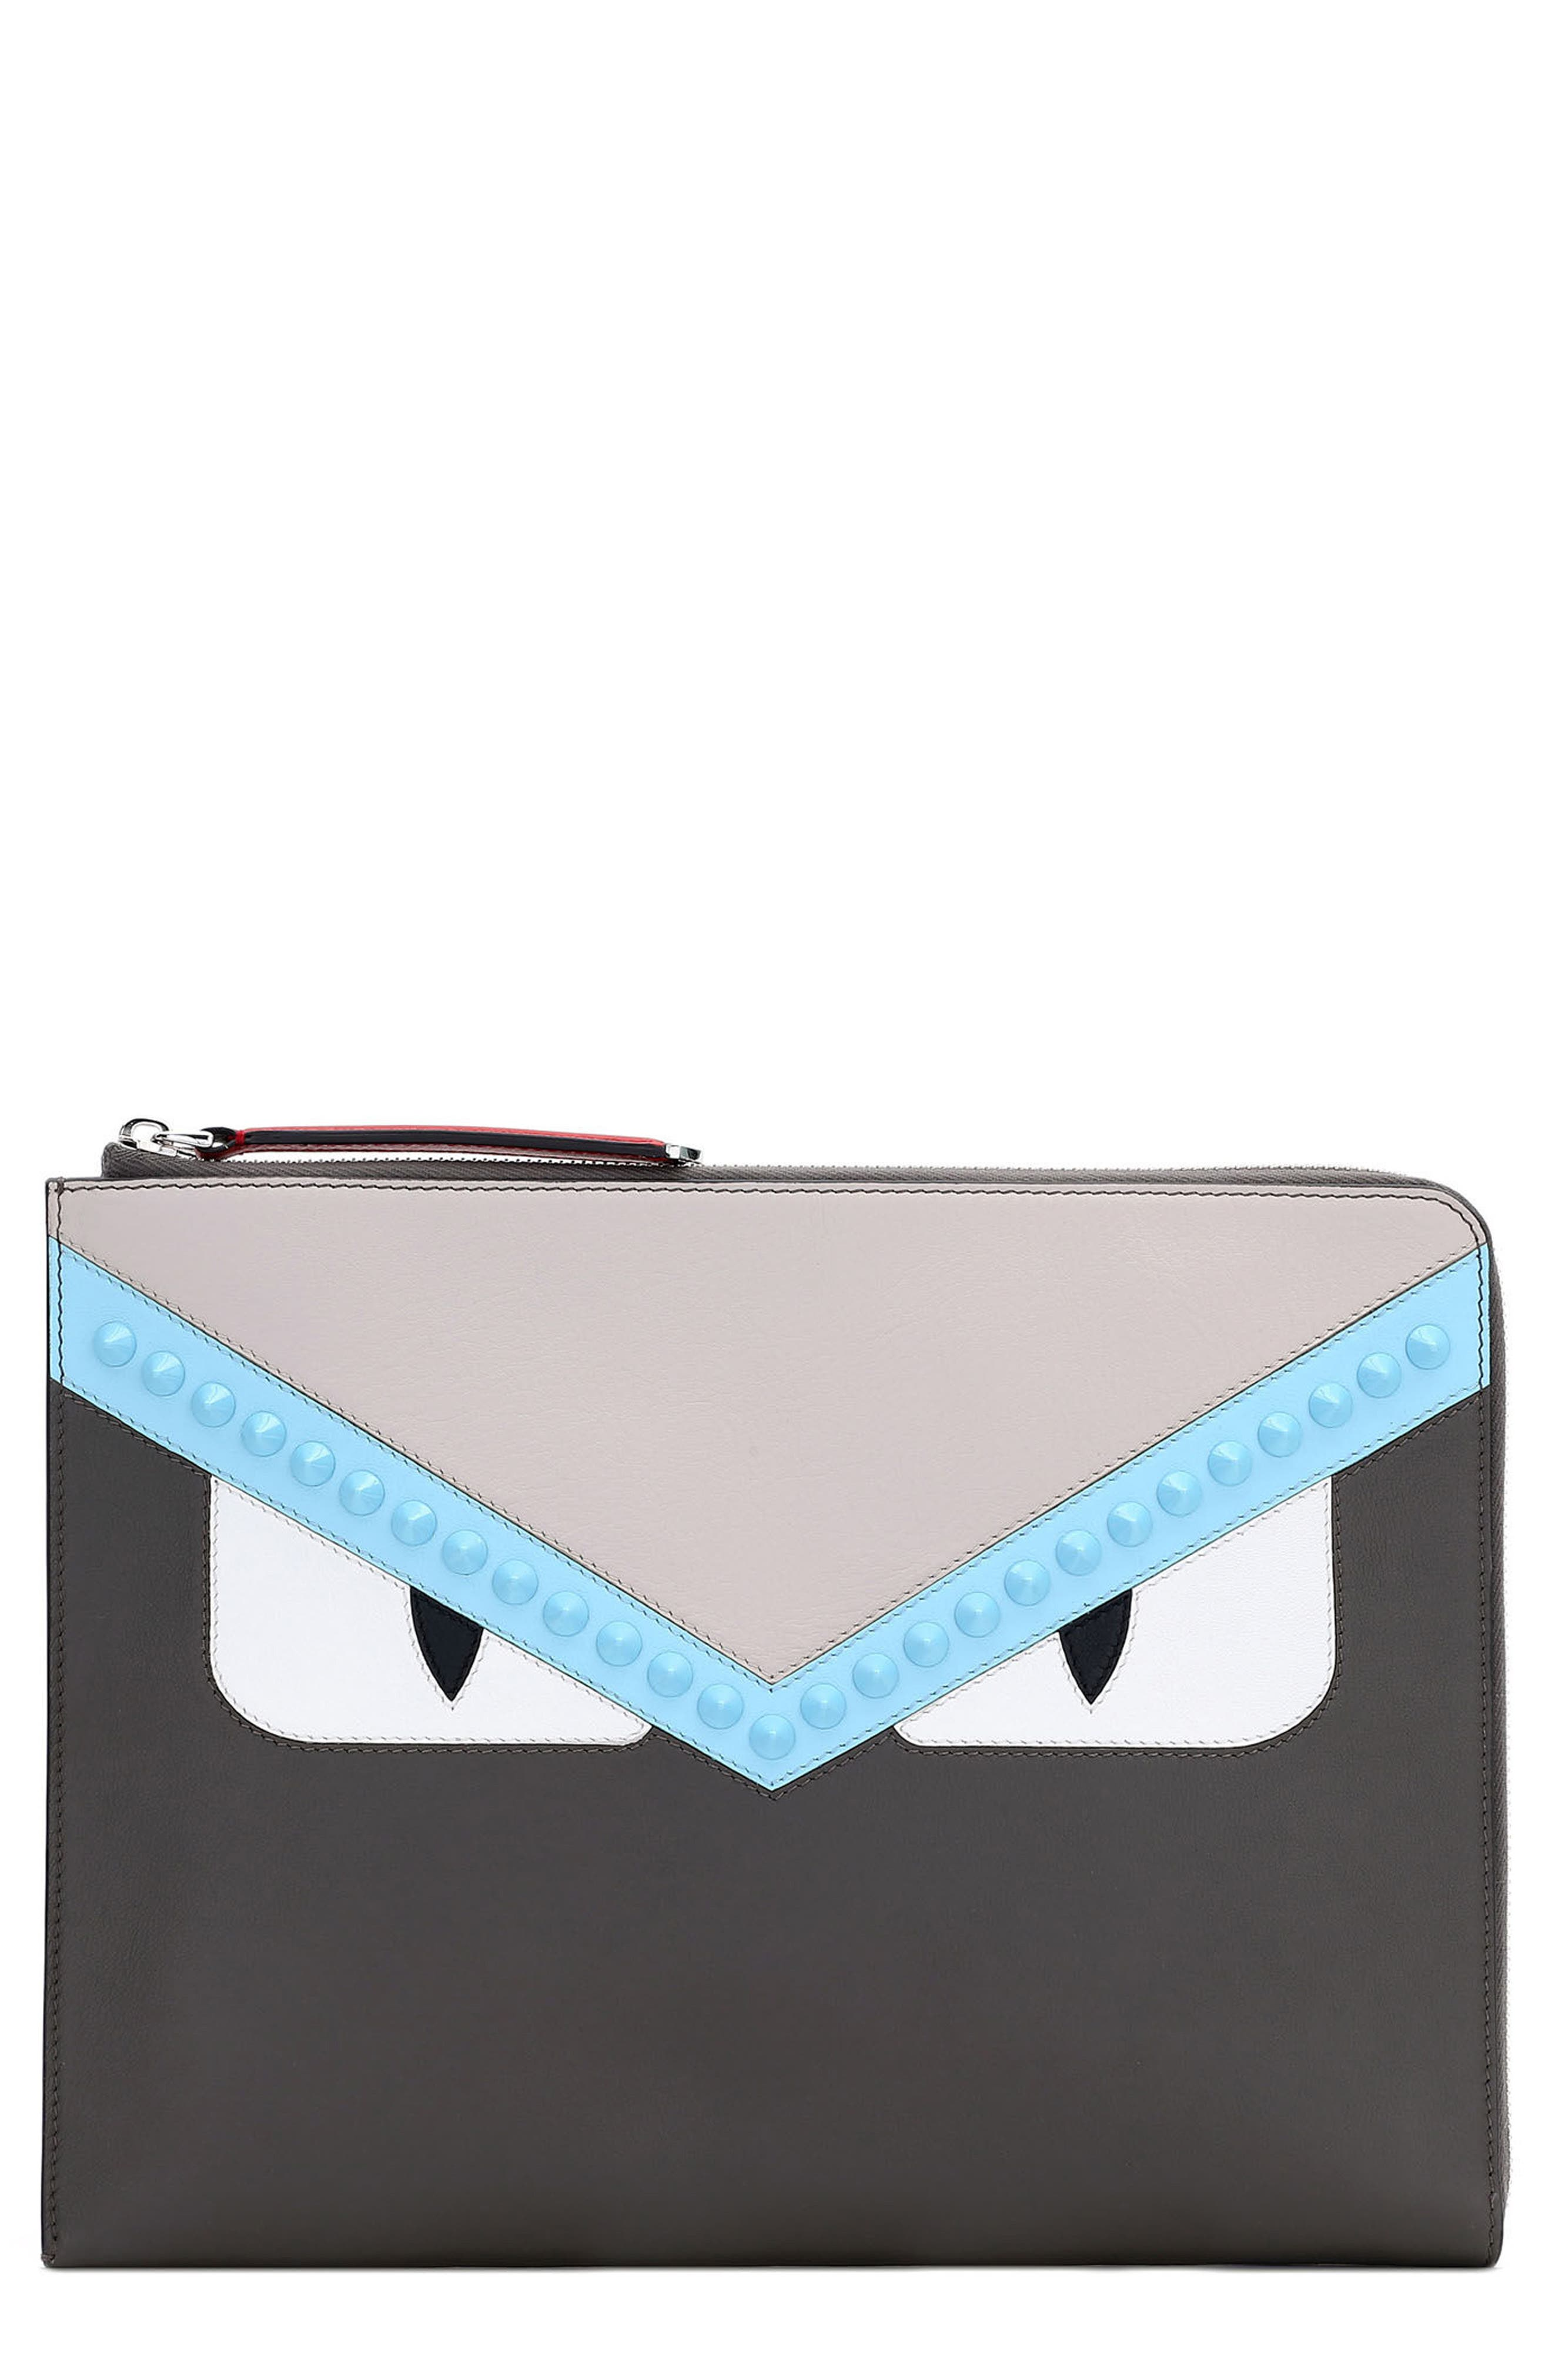 Large Monster Leather Zip Pouch,                             Main thumbnail 1, color,                             027